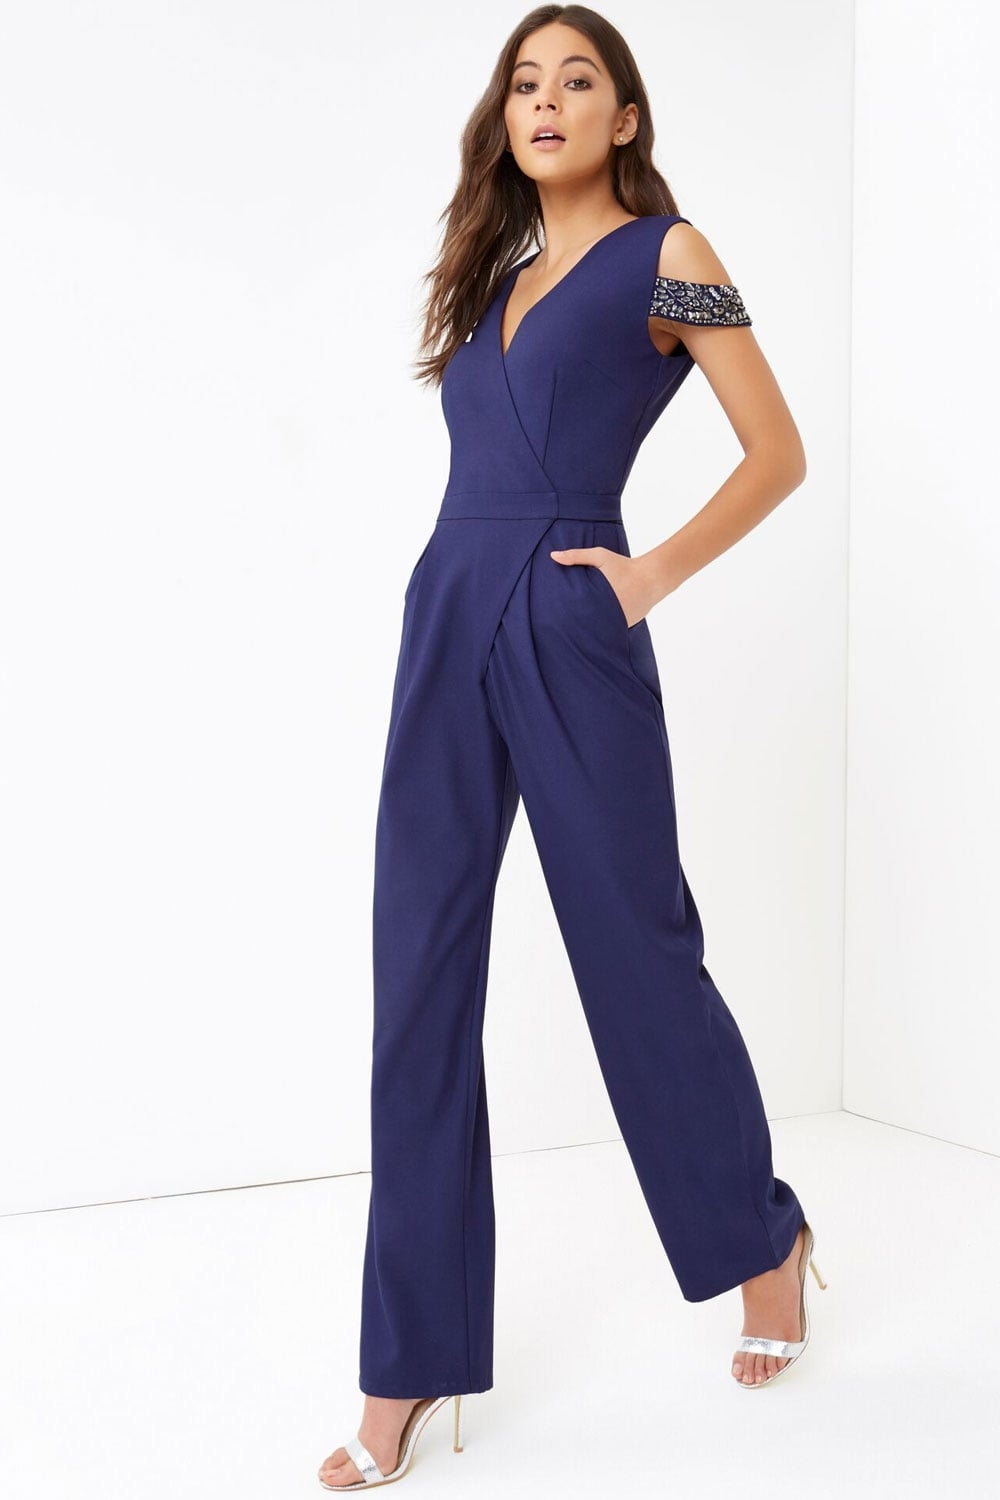 Short Sleeved Navy Blue plus size jumpsuits and playsuits; plus sized Luyeess Women's Straps Off Shoulder High Waist Ruffled Long Wide Leg Jumpsuit. by Luyeess. $ - $ $ 19 $ 23 99 Prime. FREE Shipping on eligible orders. Some sizes/colors are Prime eligible. out of 5 stars